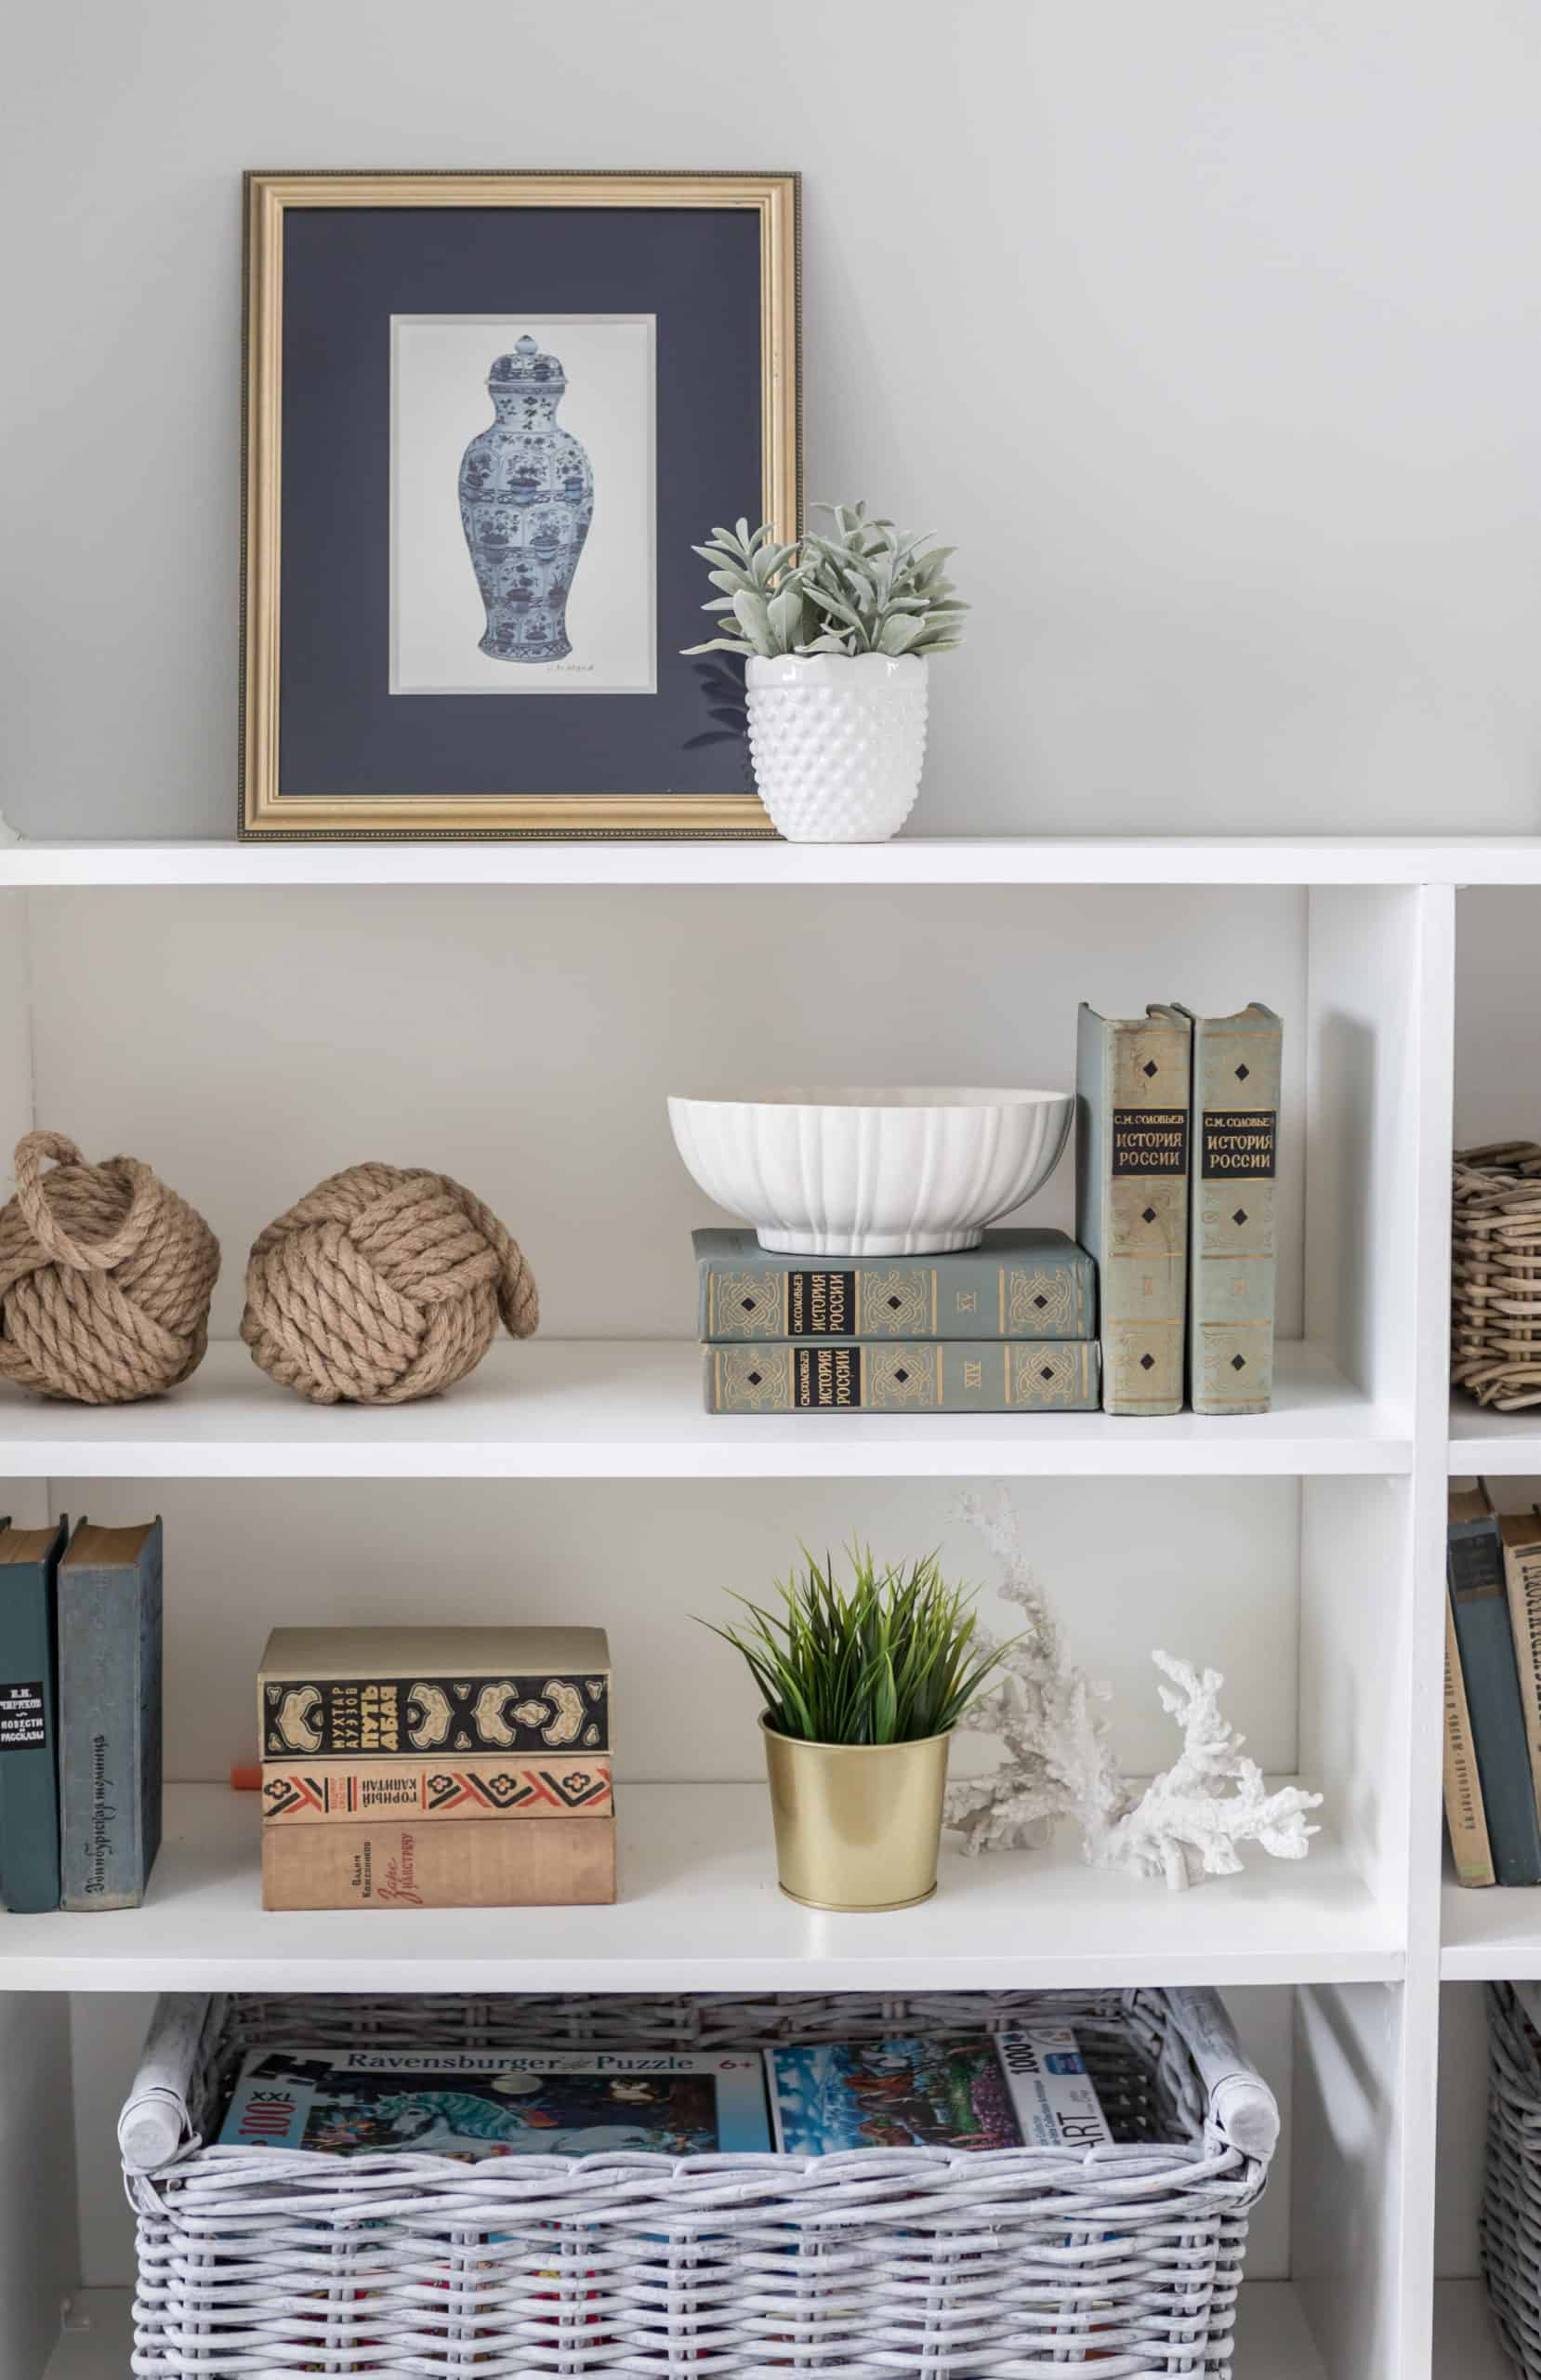 Short bookshelf with various decorations on it